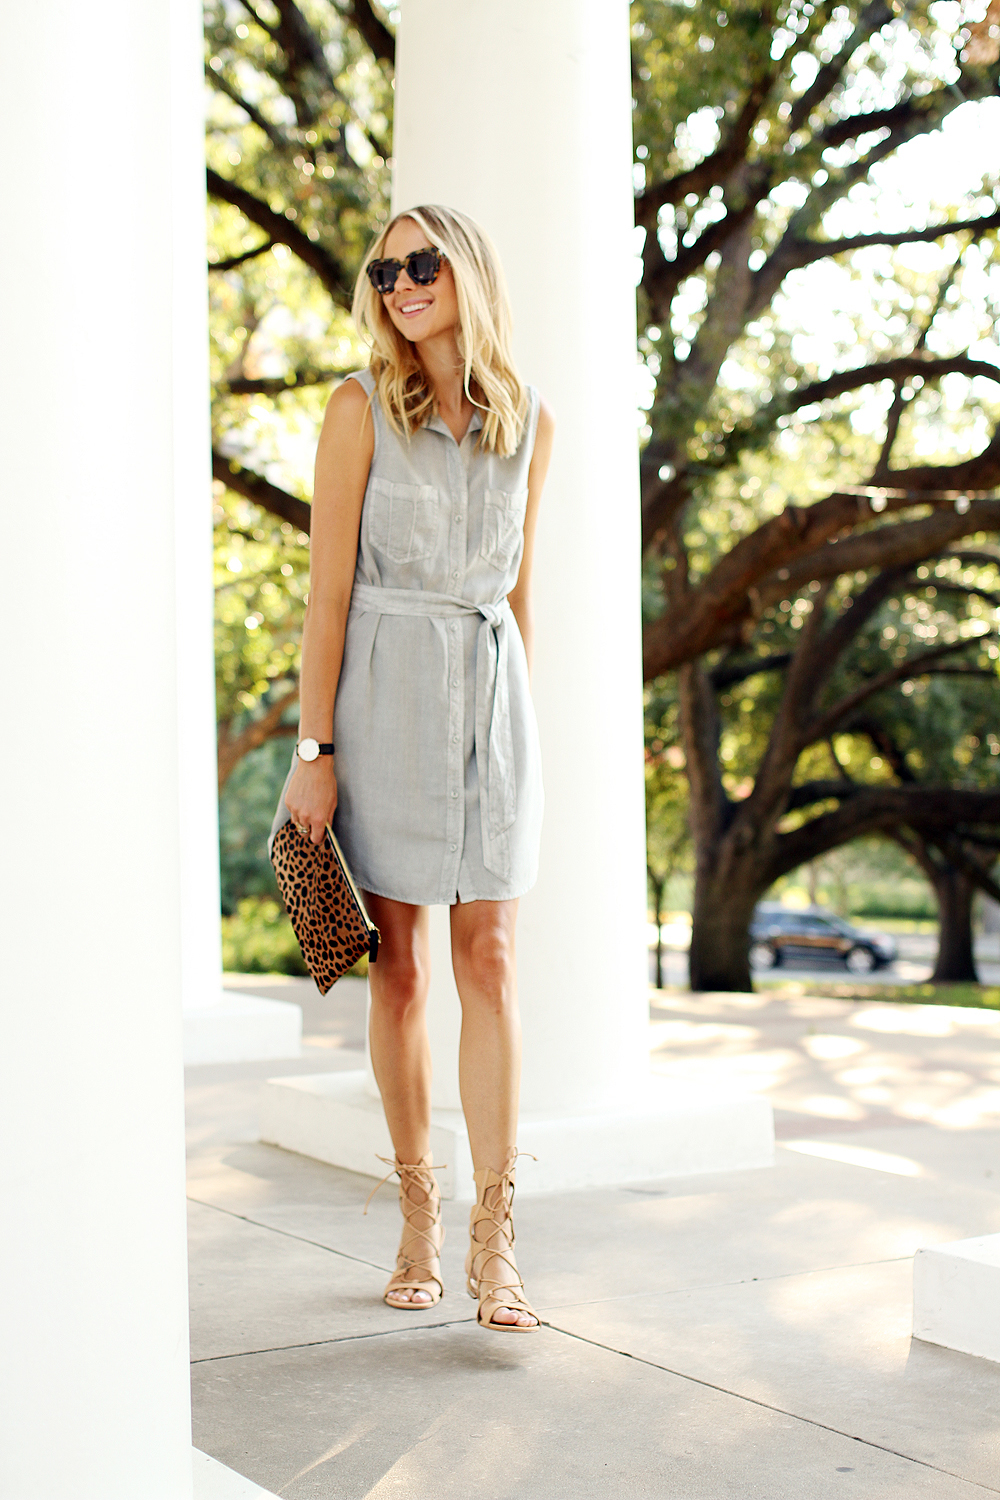 fashion-jackson-sleeveless-tencel-shirt-dress-schutz-lina-lace-up-gladiators-karen-walker-number-one-sunglasses-clare-v-leopard-clutch